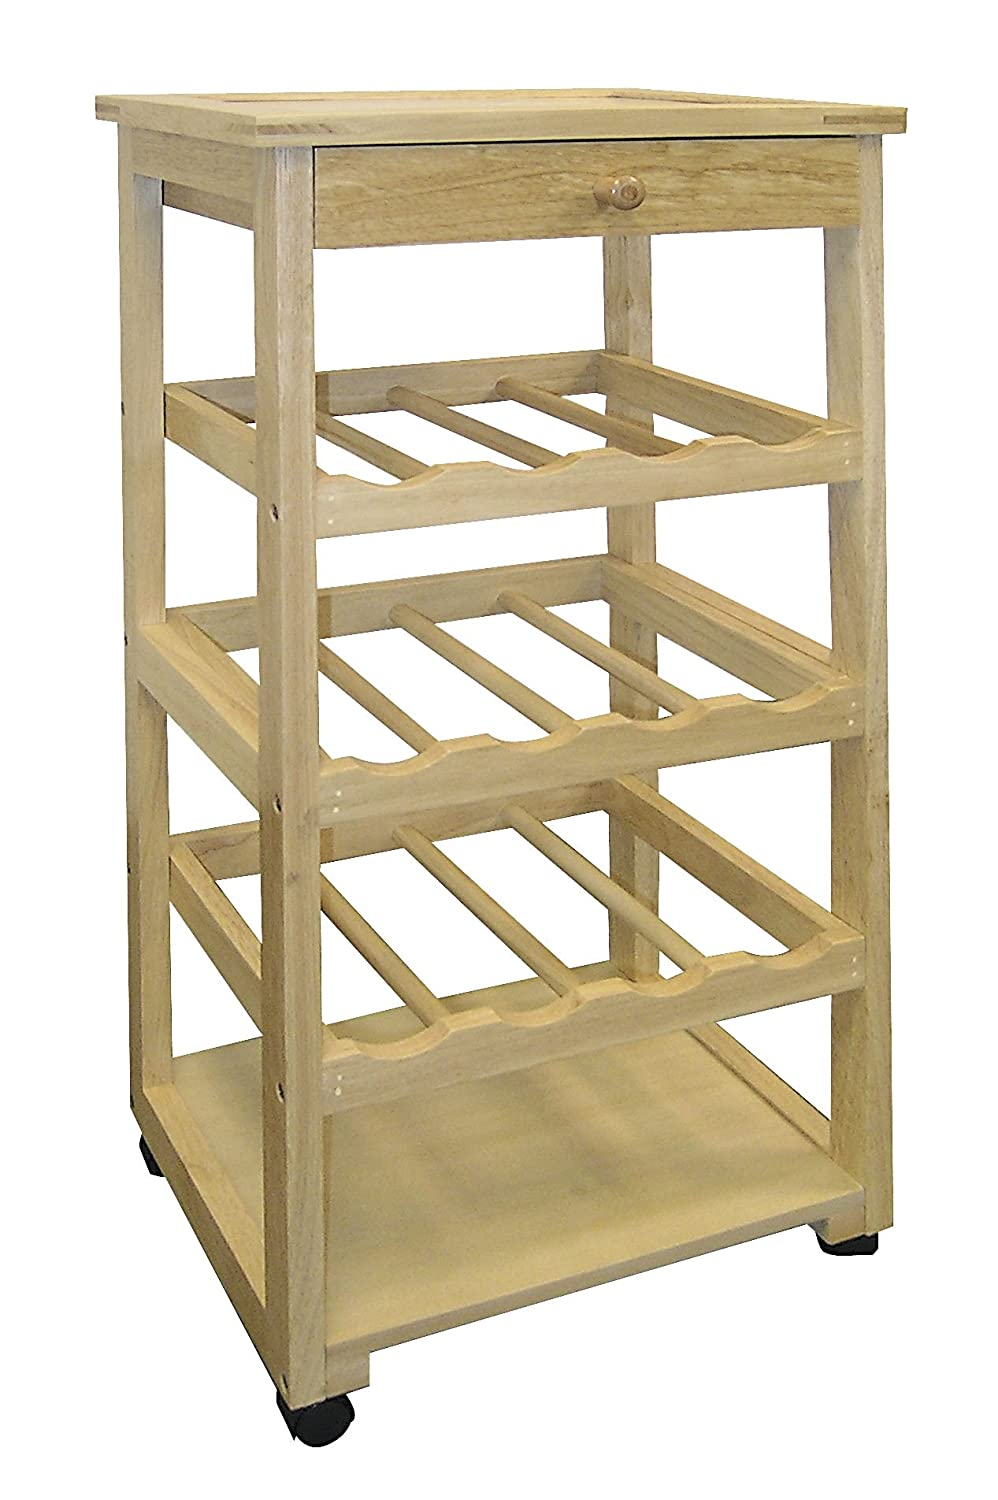 Ore International F-2002 Wooden Wine Rack with Wheels ORE1108